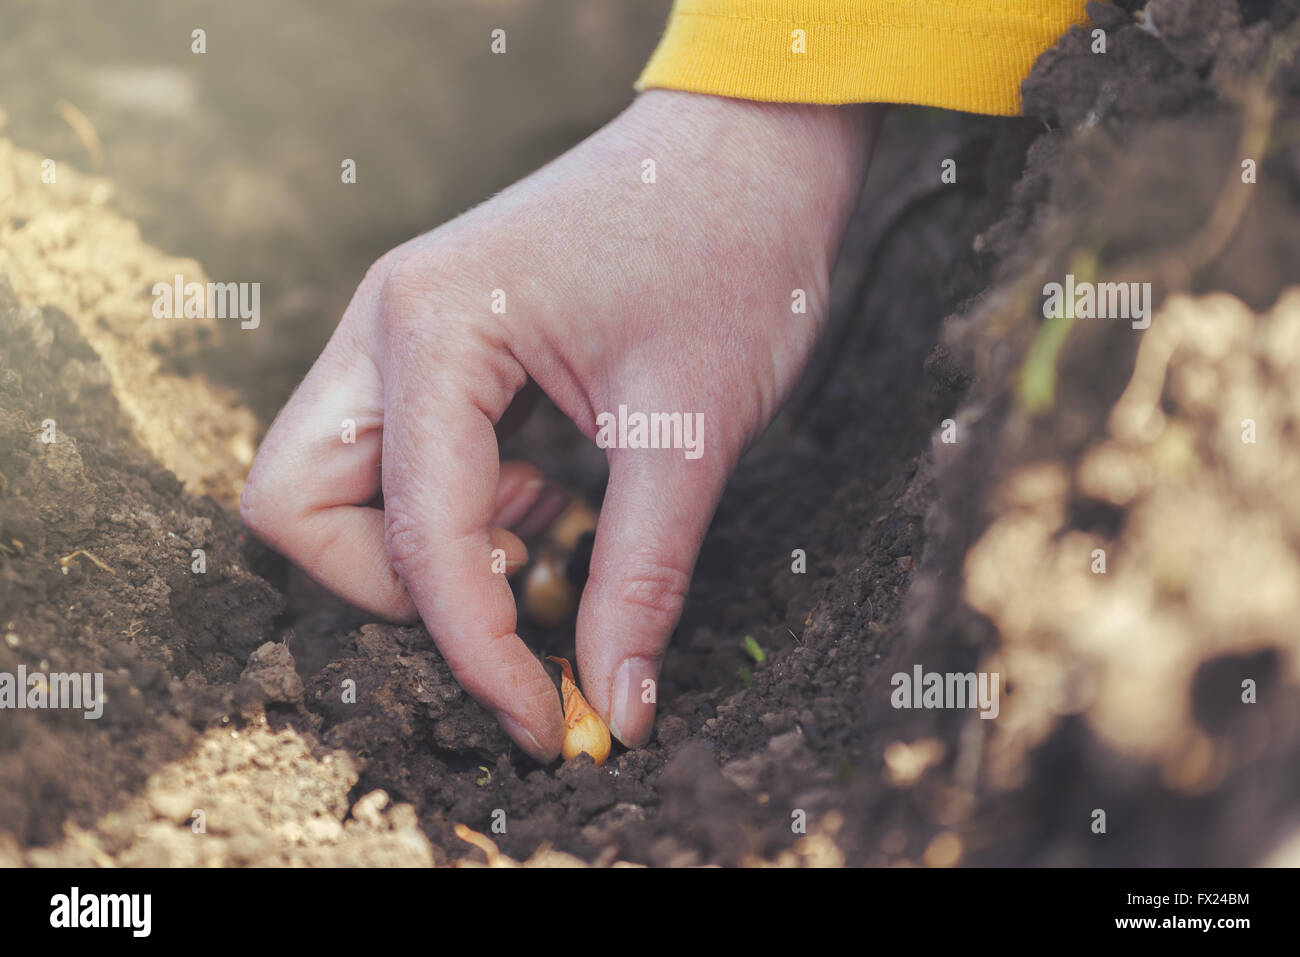 Woman seeding onions in organic vegetable garden, close up of hand planting seeds in arable soil. - Stock Image